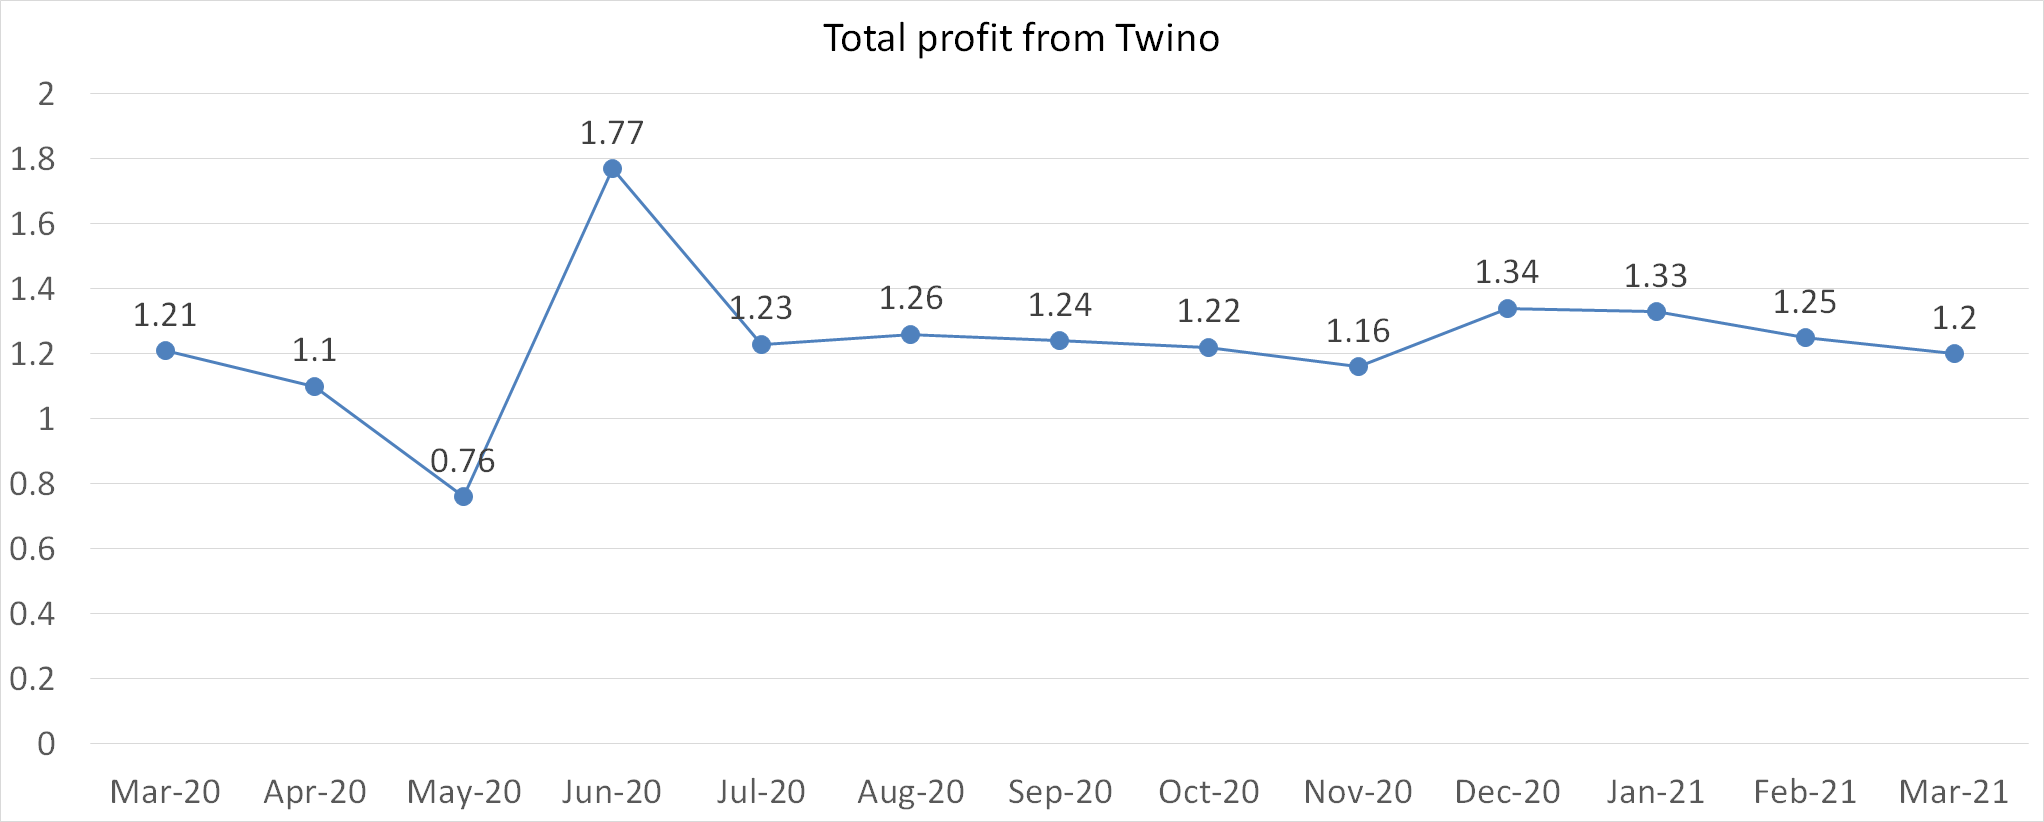 Total profit from Twino march 2021